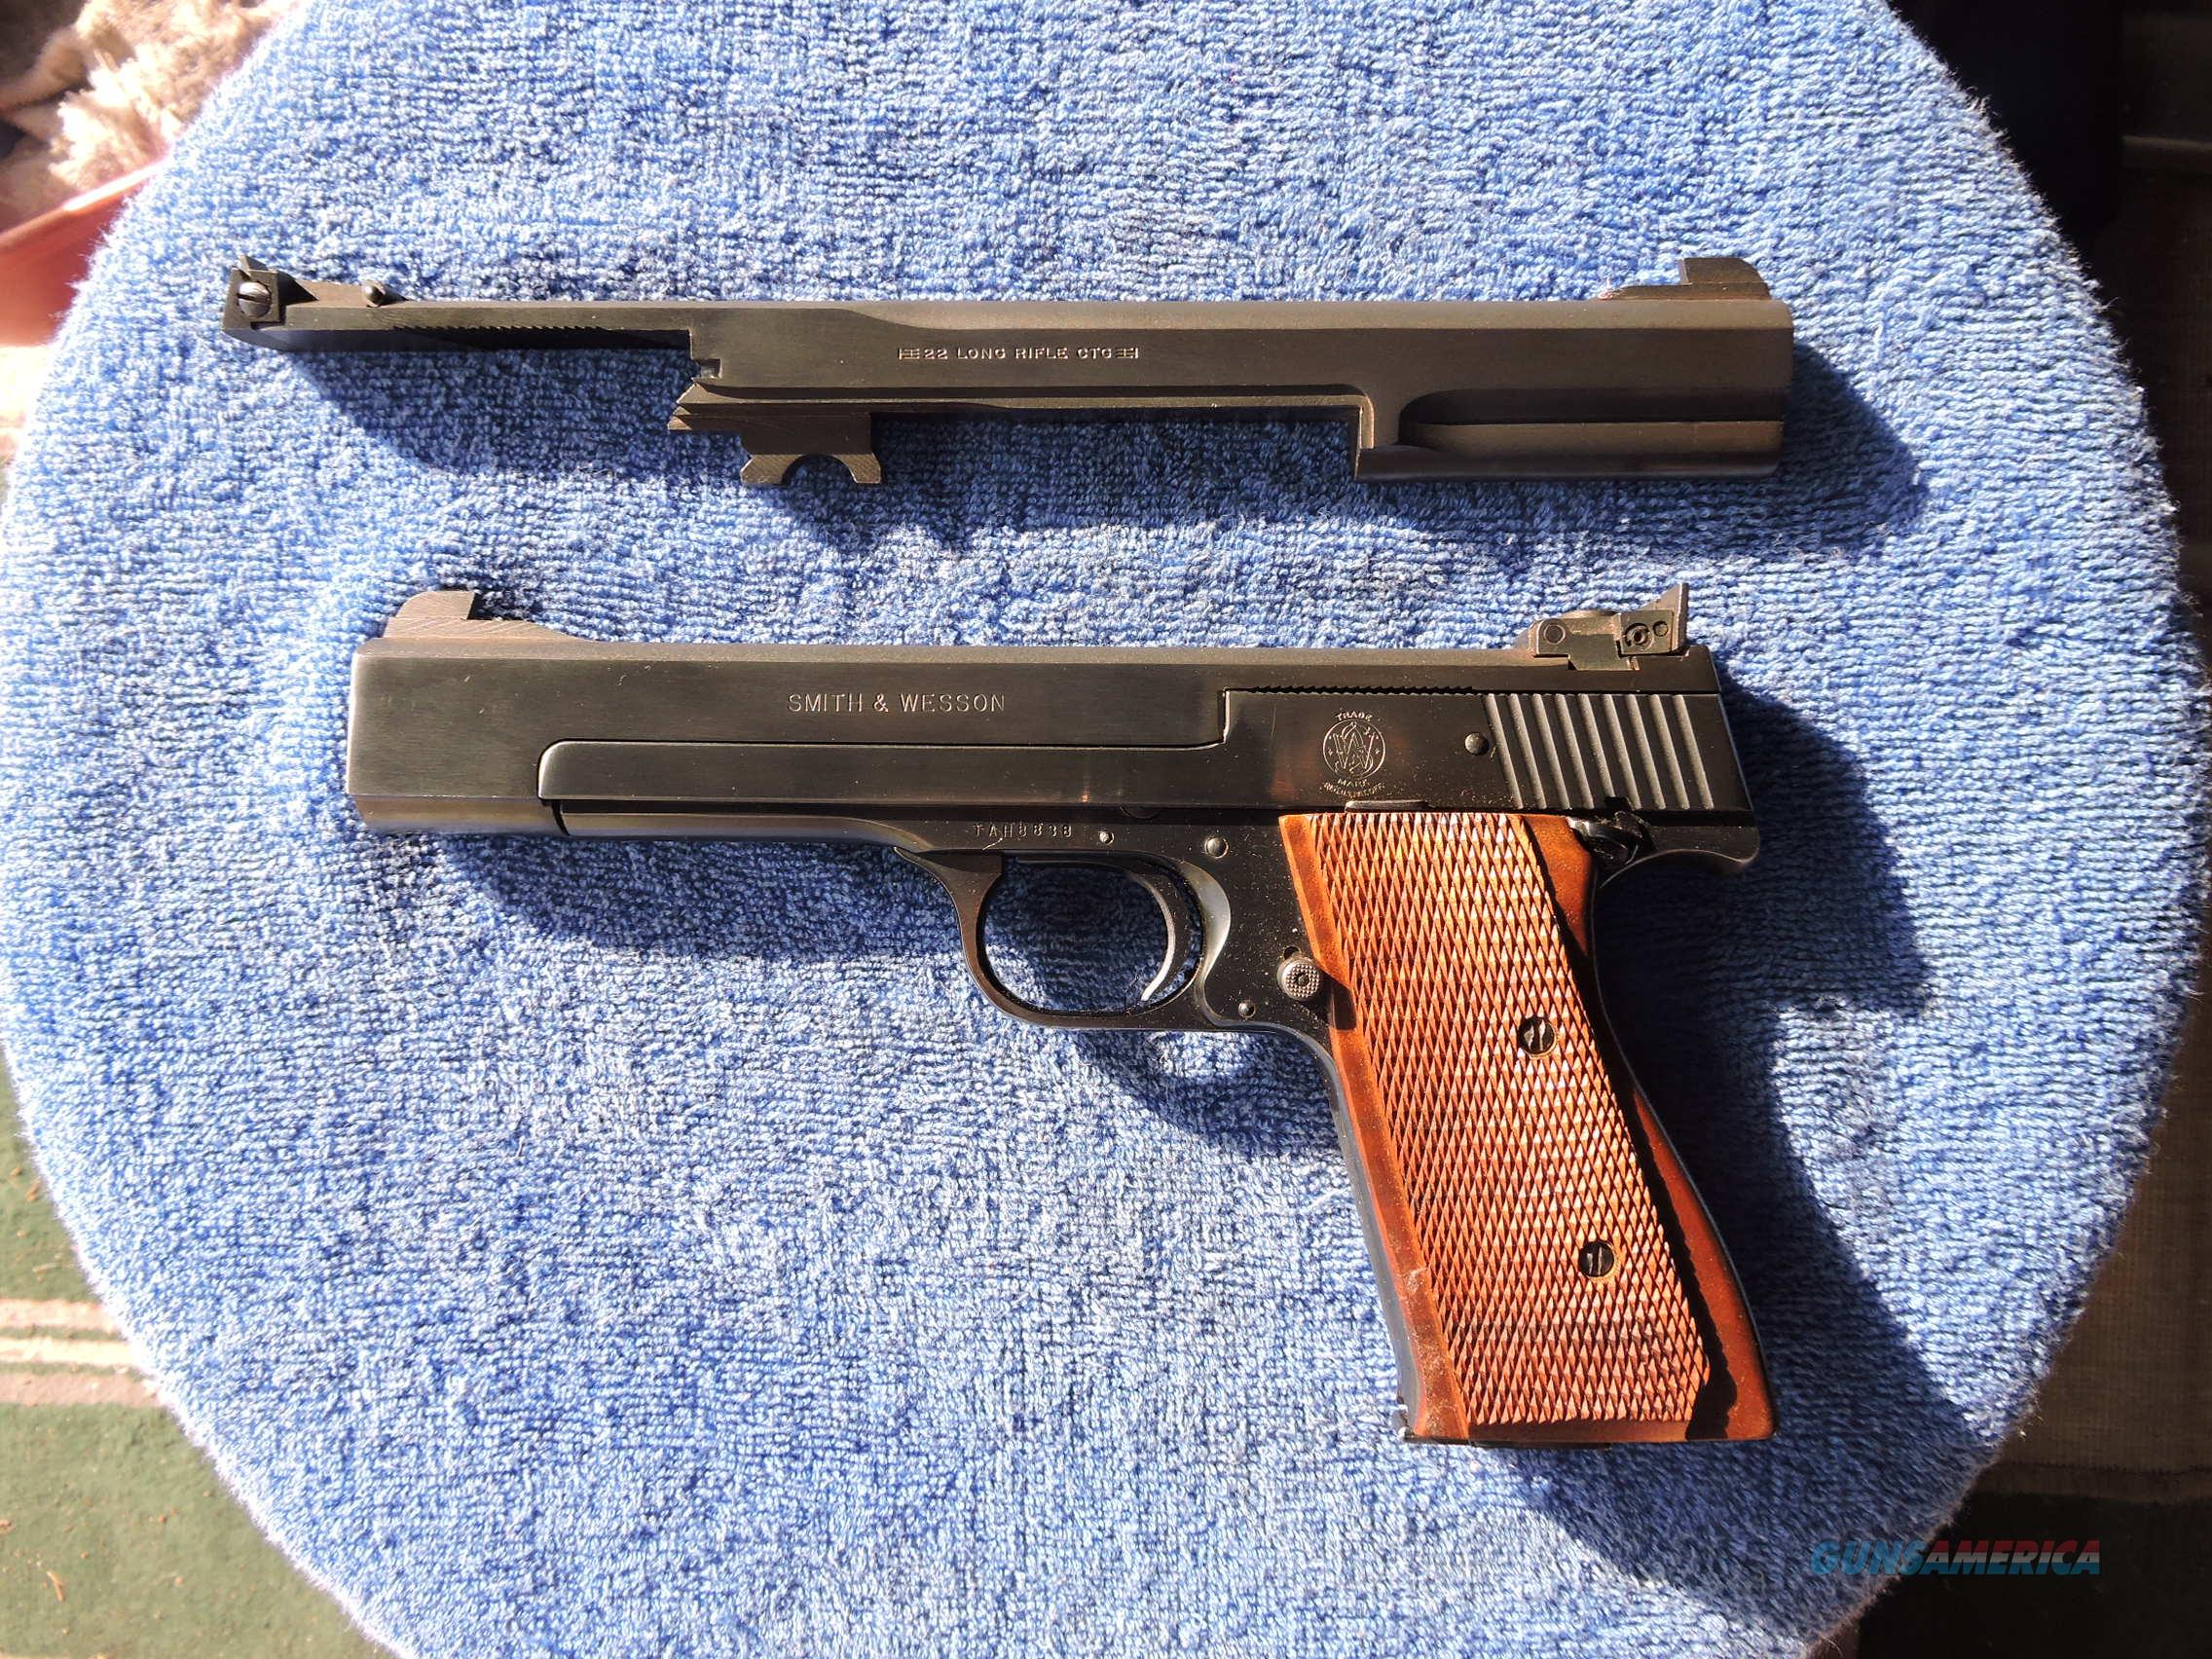 "SMITH & WESSON Model 41 .22 LR Semi-Auto Pistol with 5"" and 7"" barrels!  Guns > Pistols > Smith & Wesson Pistols - Autos > .22 Autos"